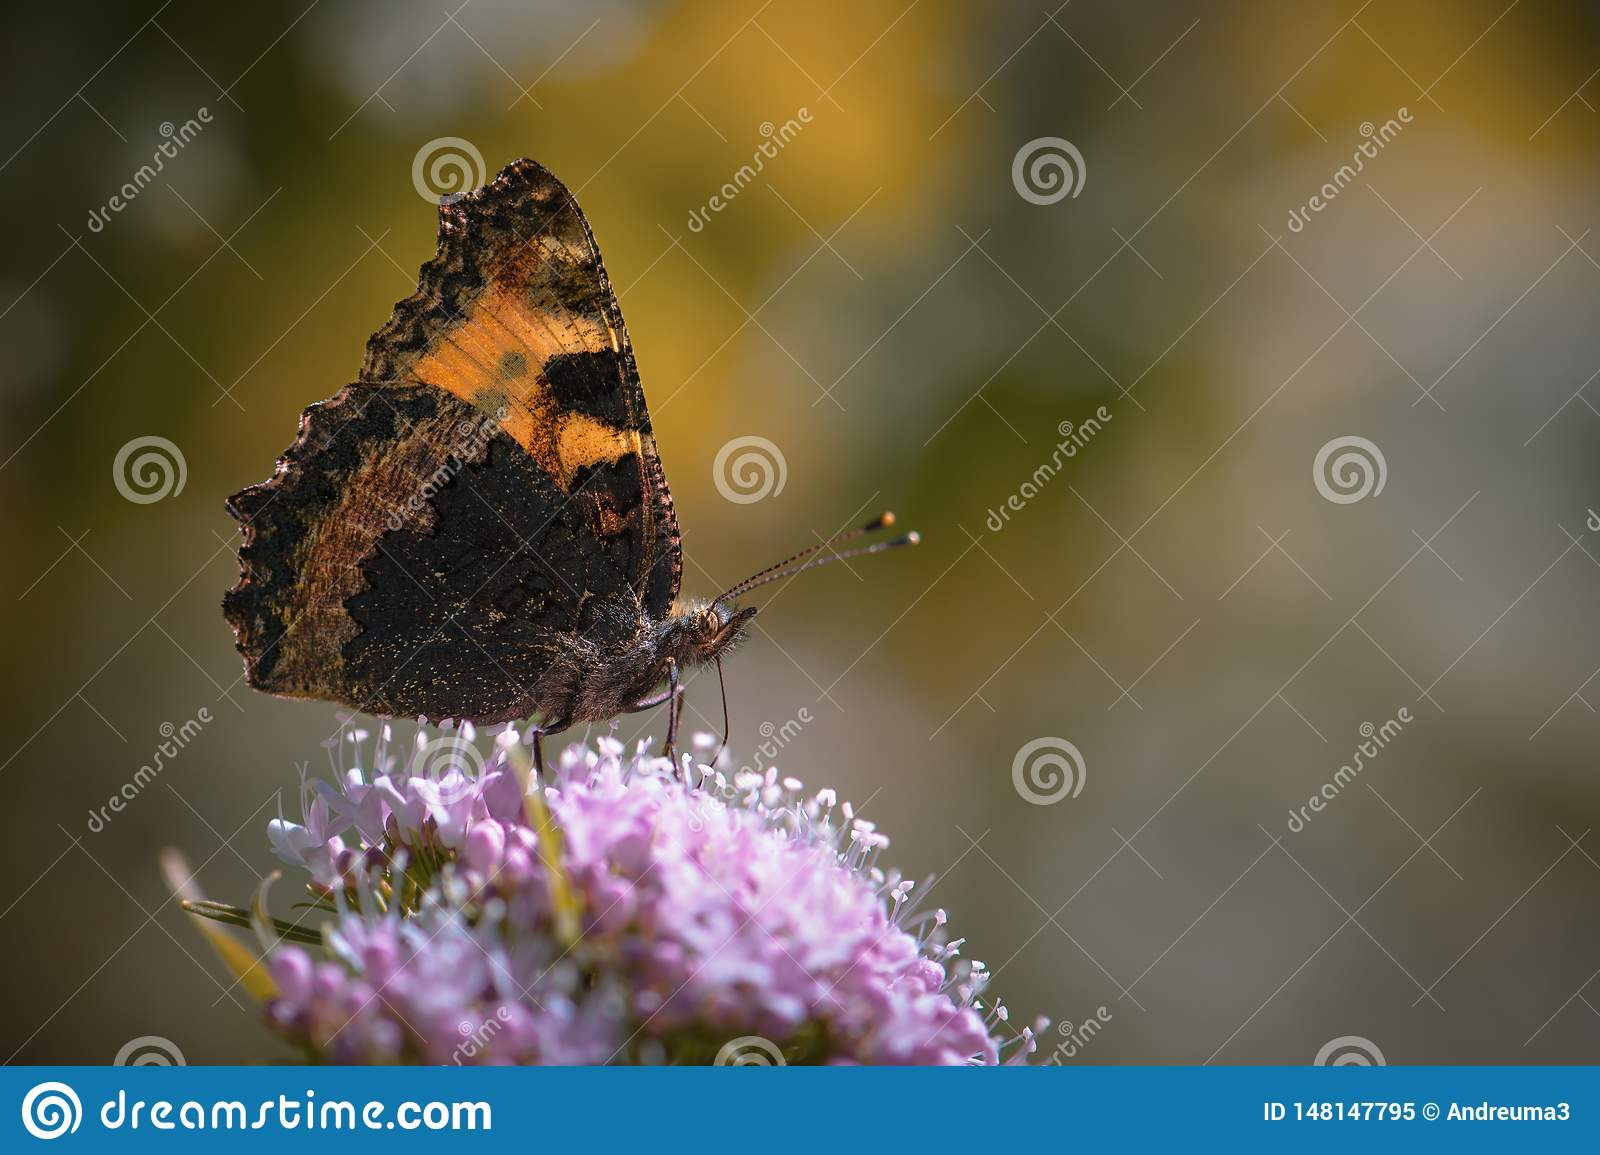 Natural photo of orange butterfly